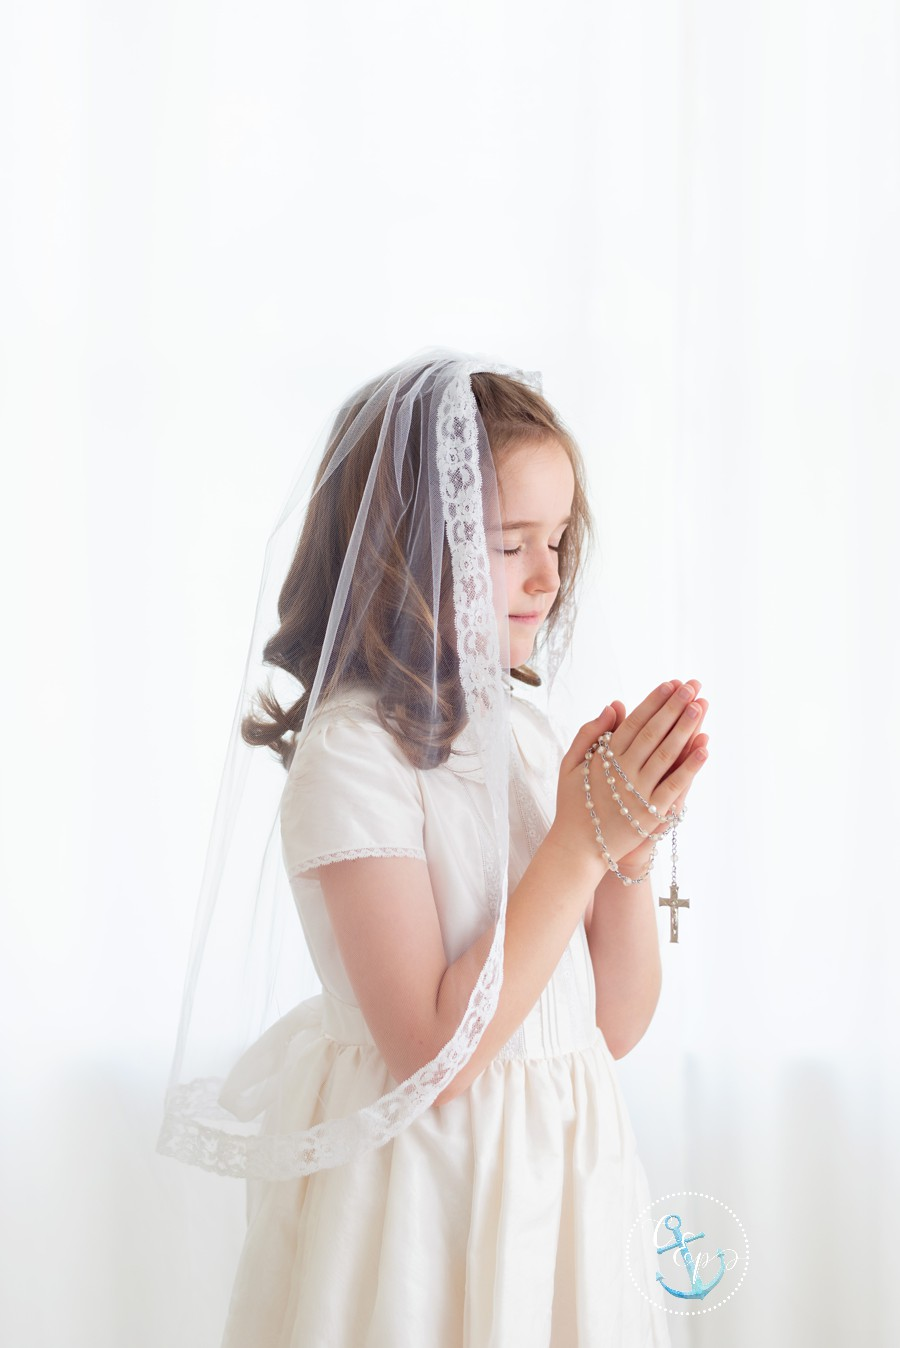 First Communion Portraits Frederick MD, Maryland First Holy Communion Pictures, Cristina Elisa Photography LLC, Girls first communion pictures